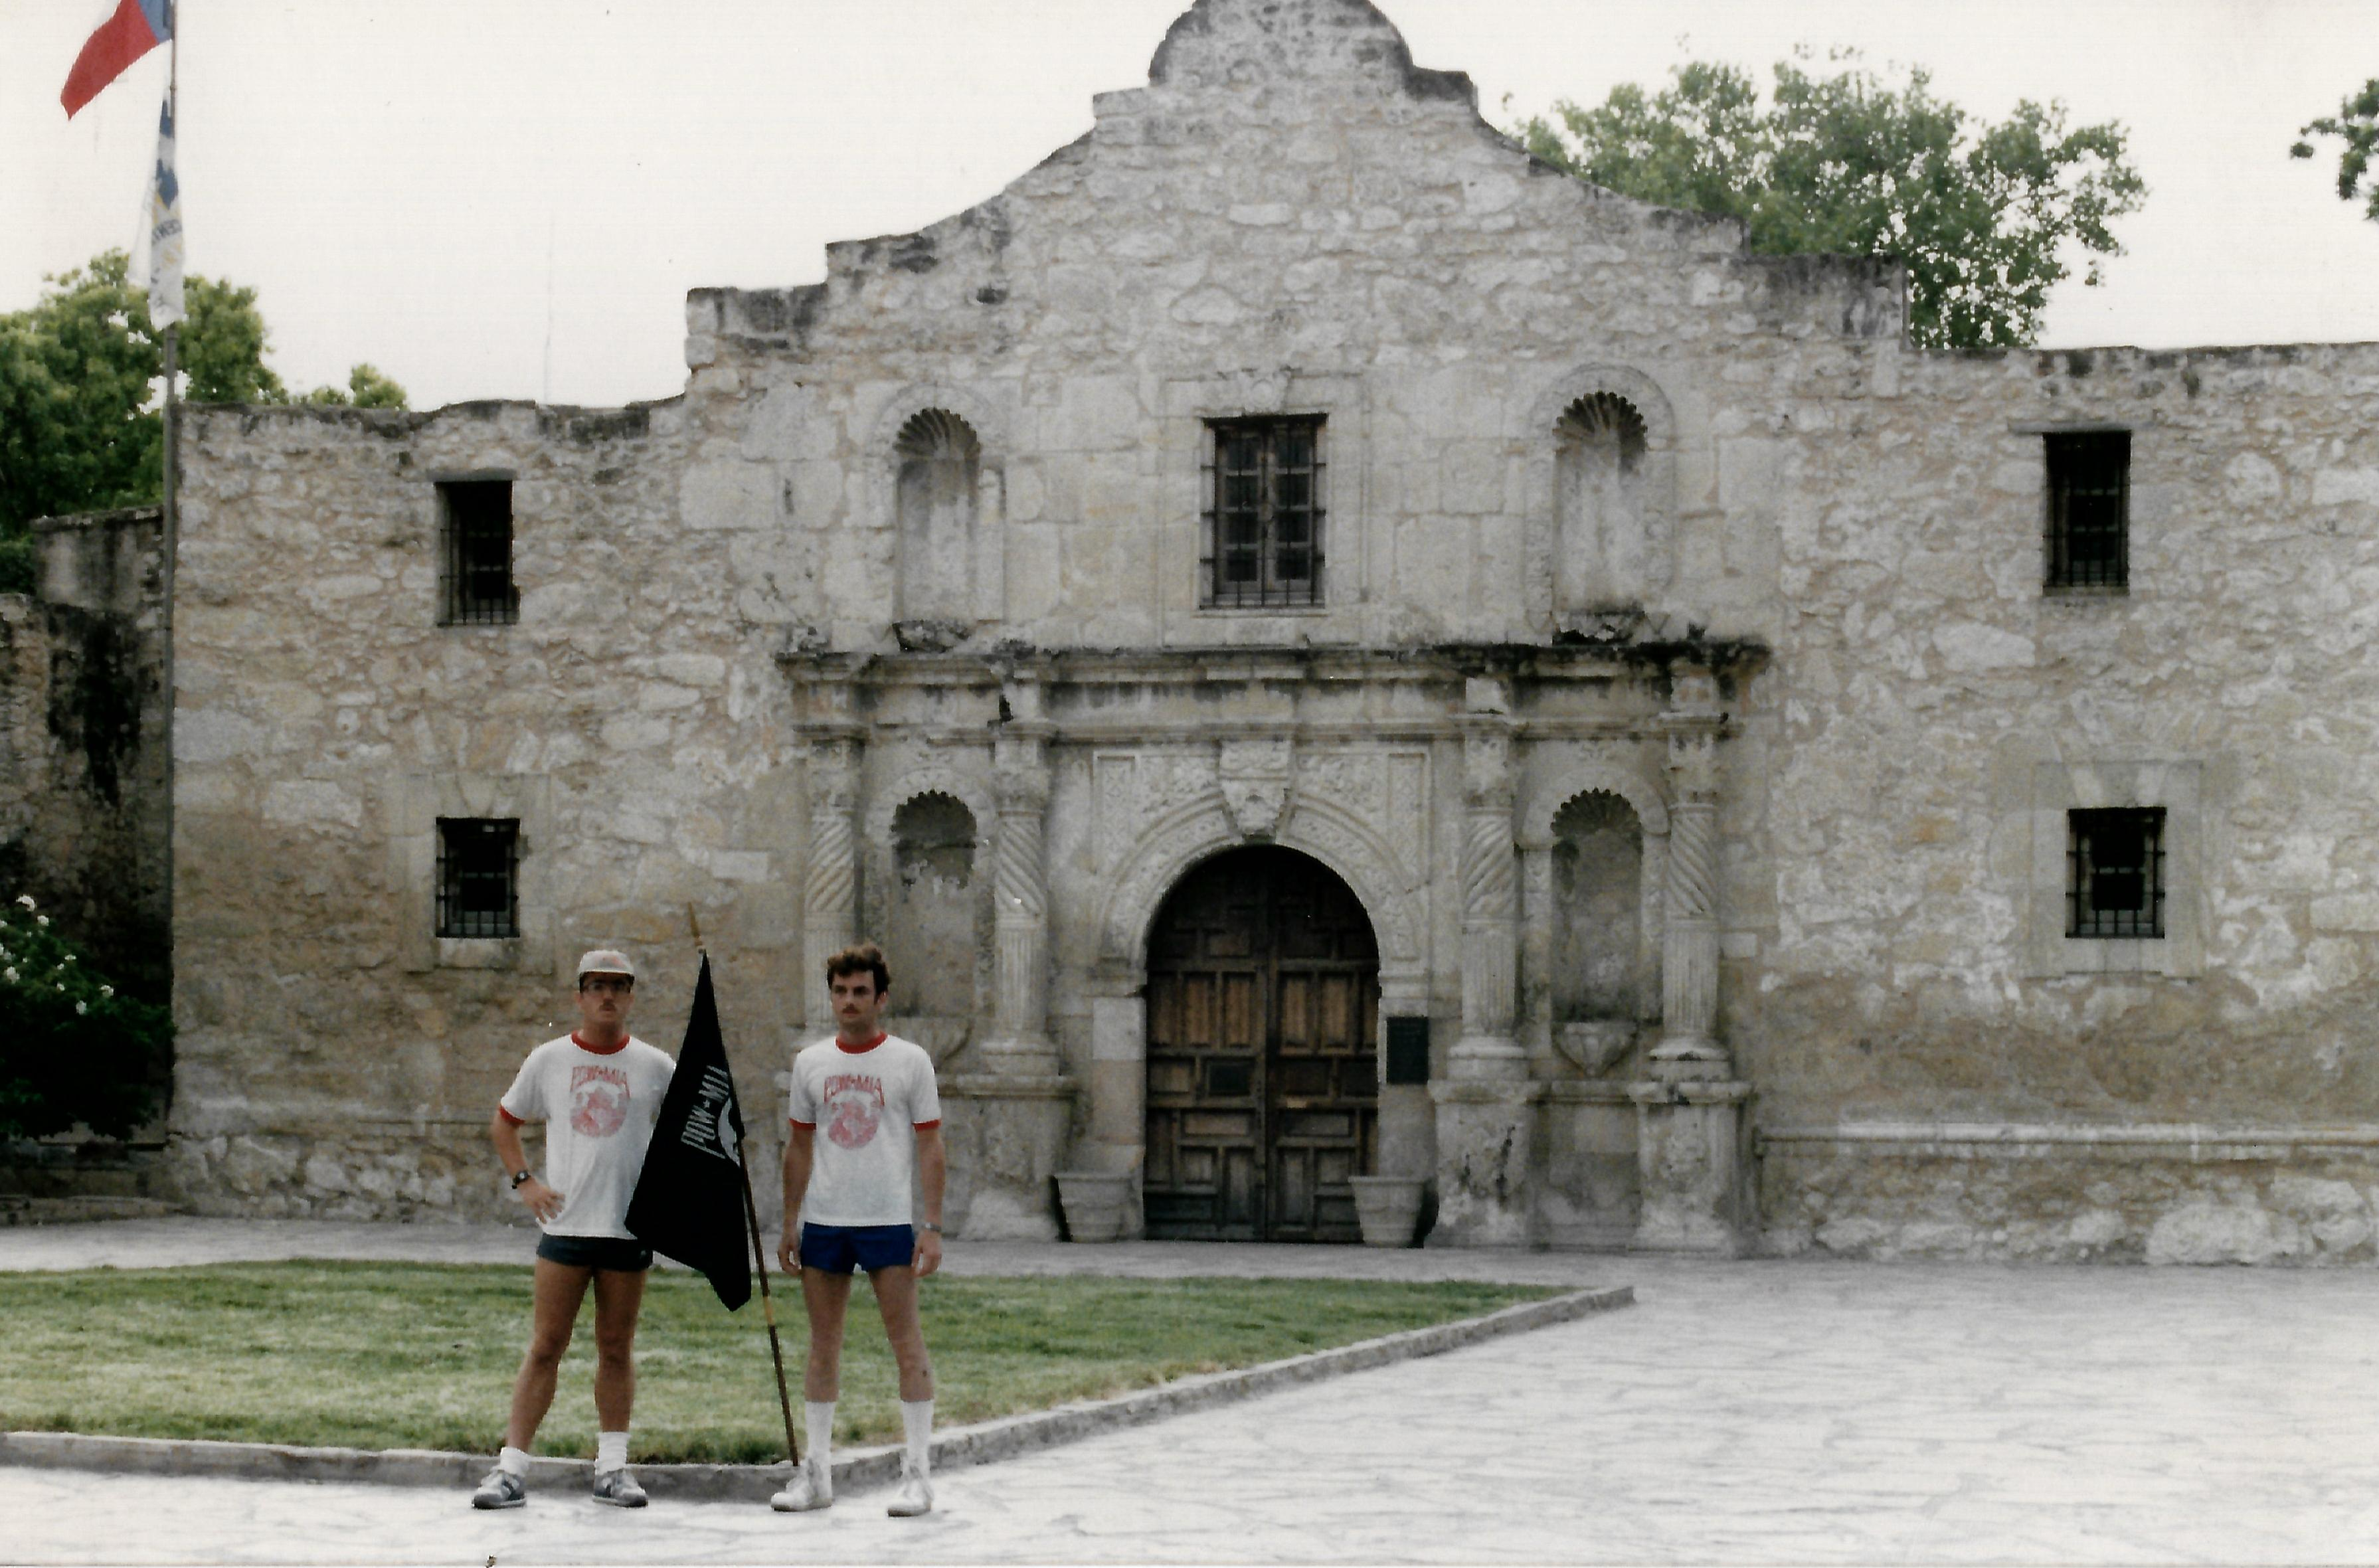 In front of Alamo